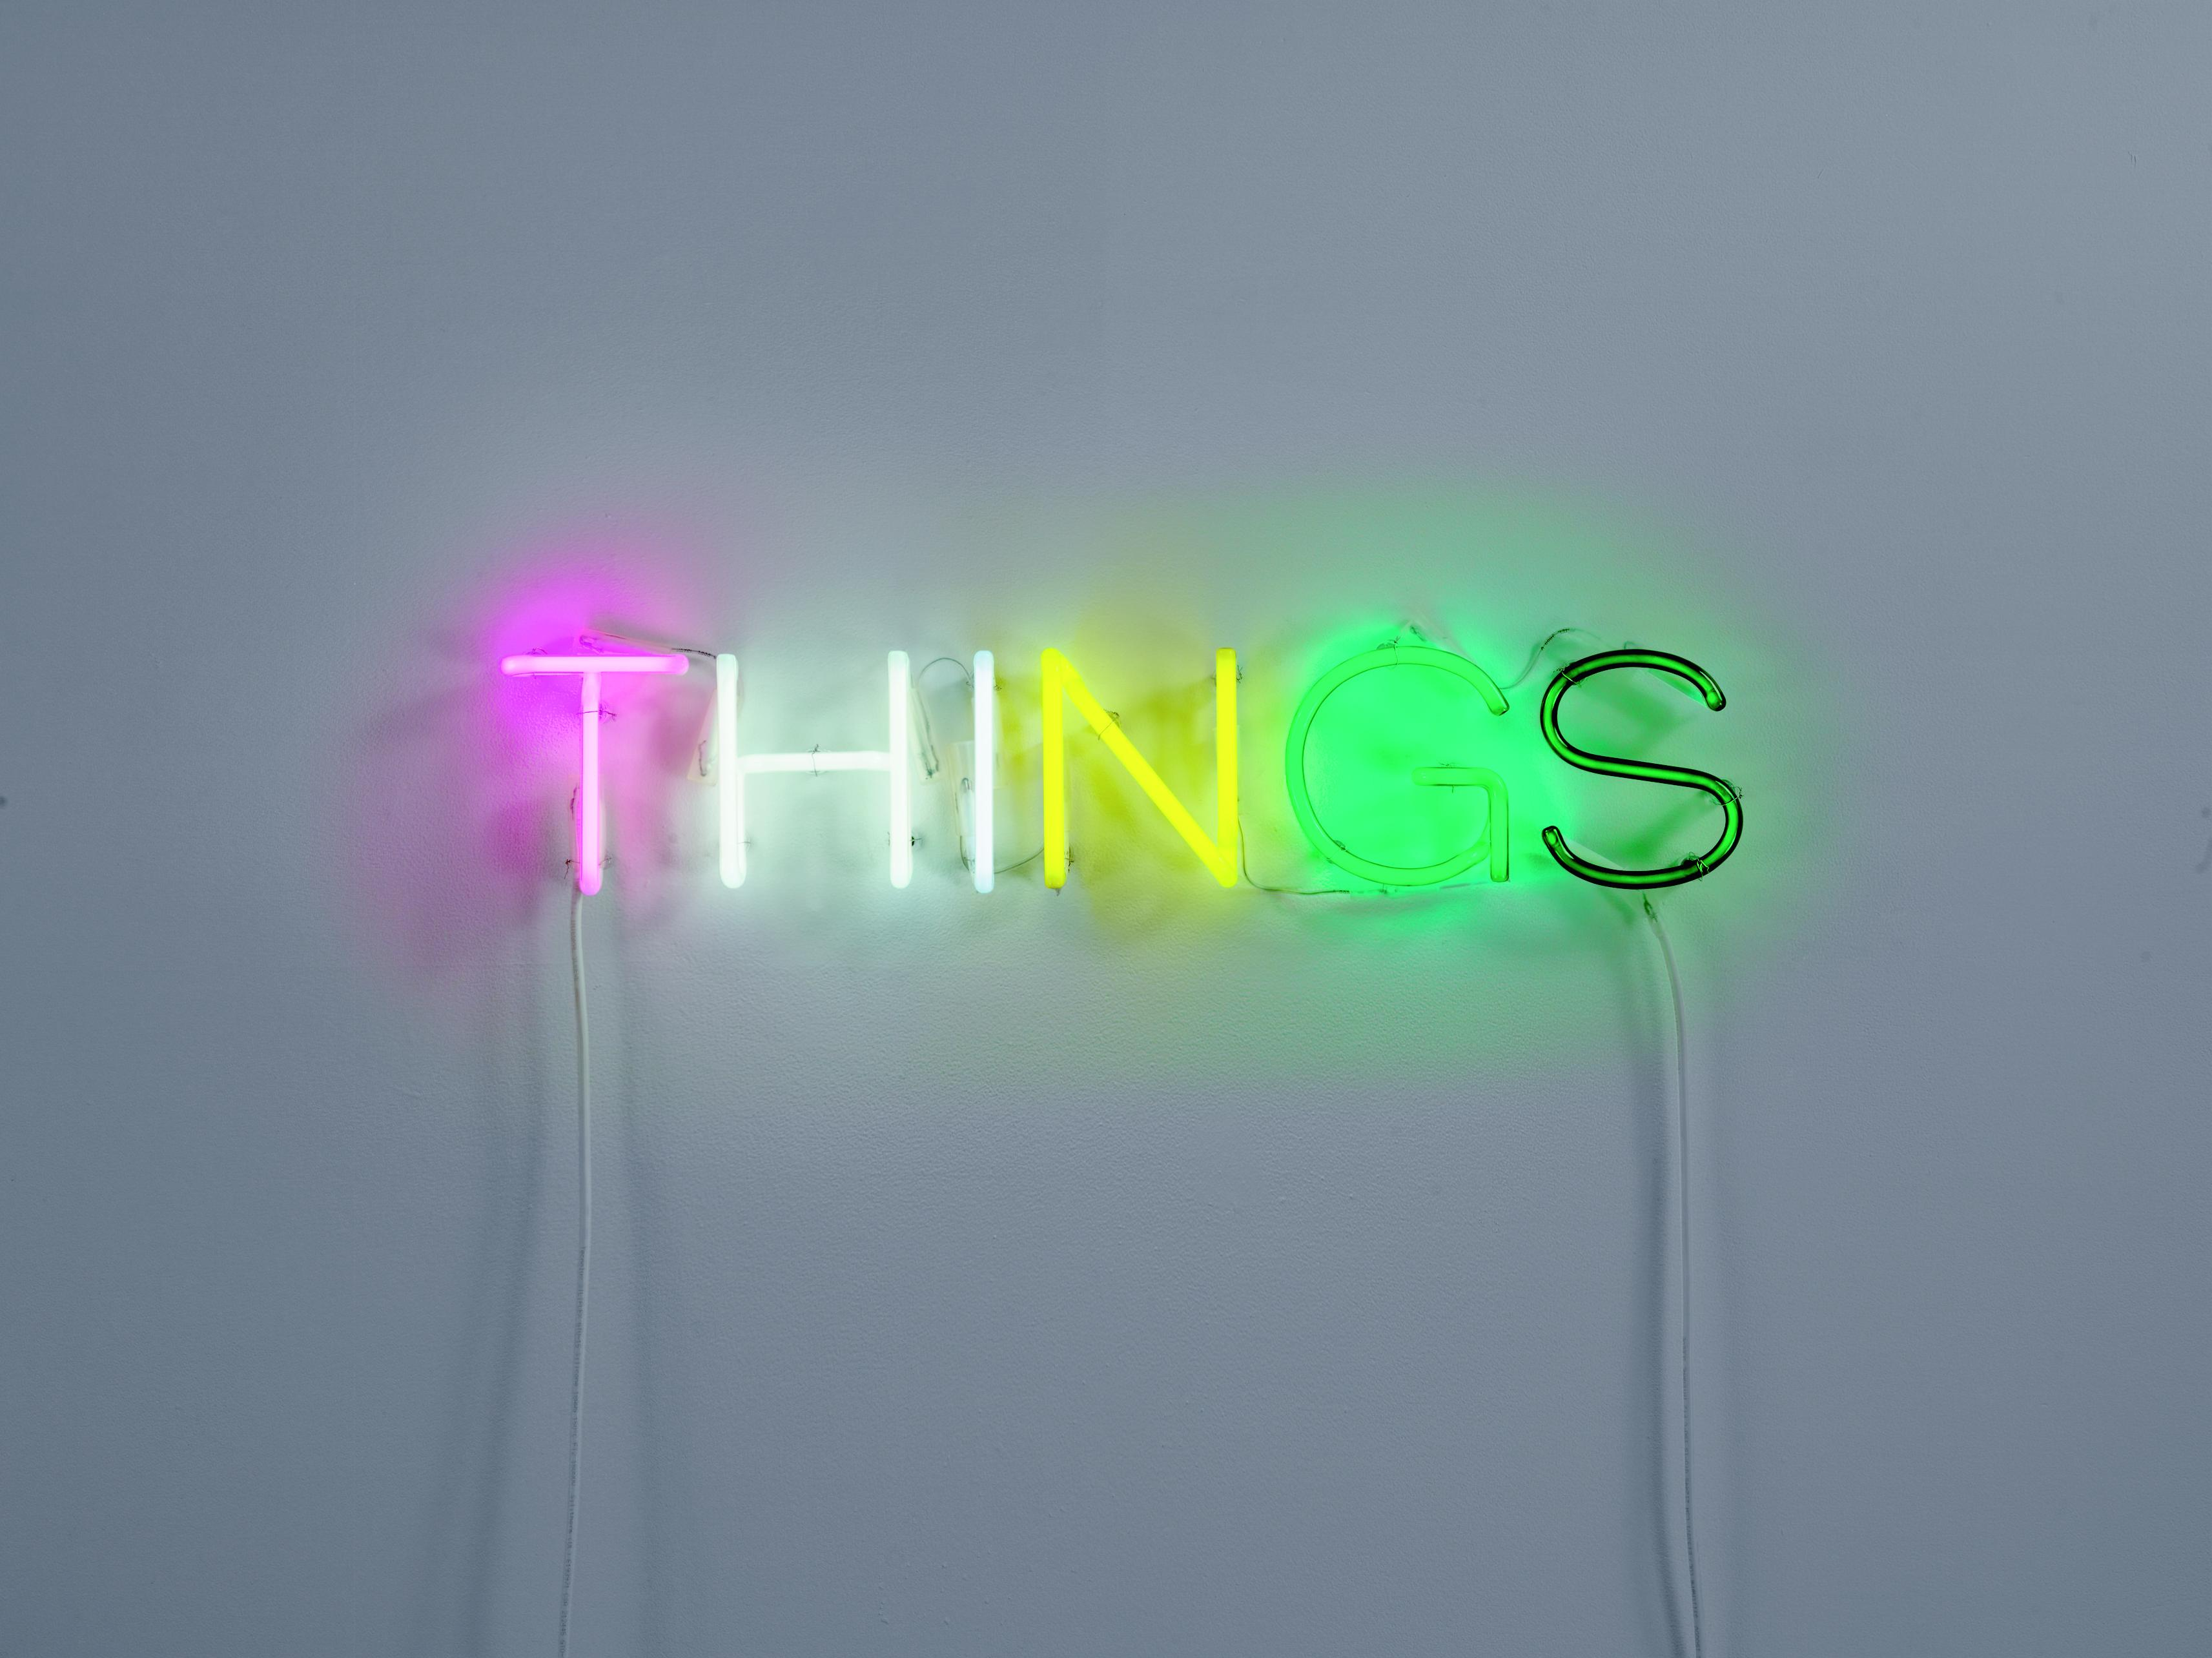 """A glowing neon-light sculpture spells out the word """"THINGS."""""""